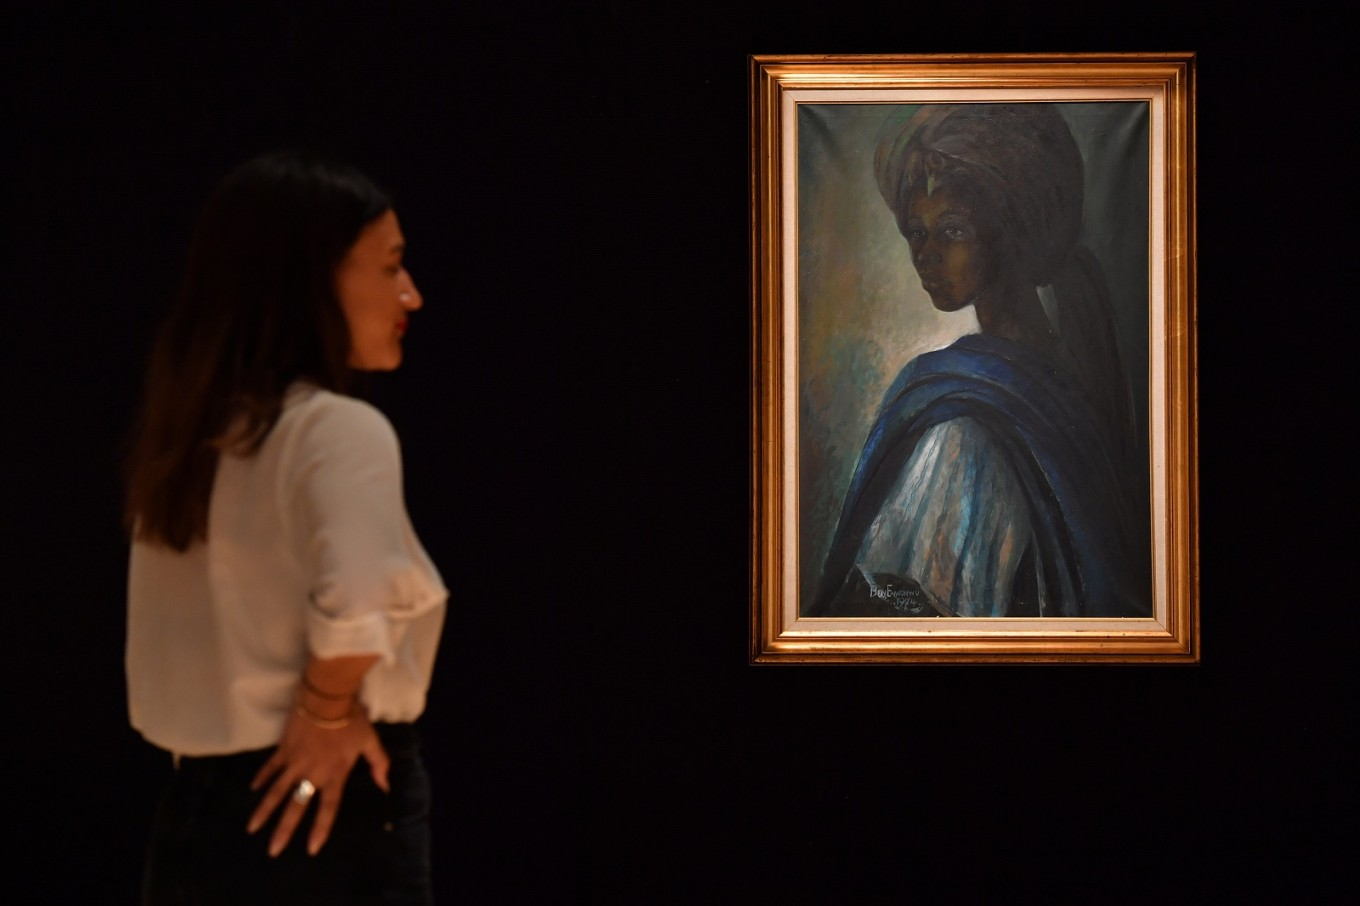 'African Mona Lisa' mesmerises after surprise rediscovery